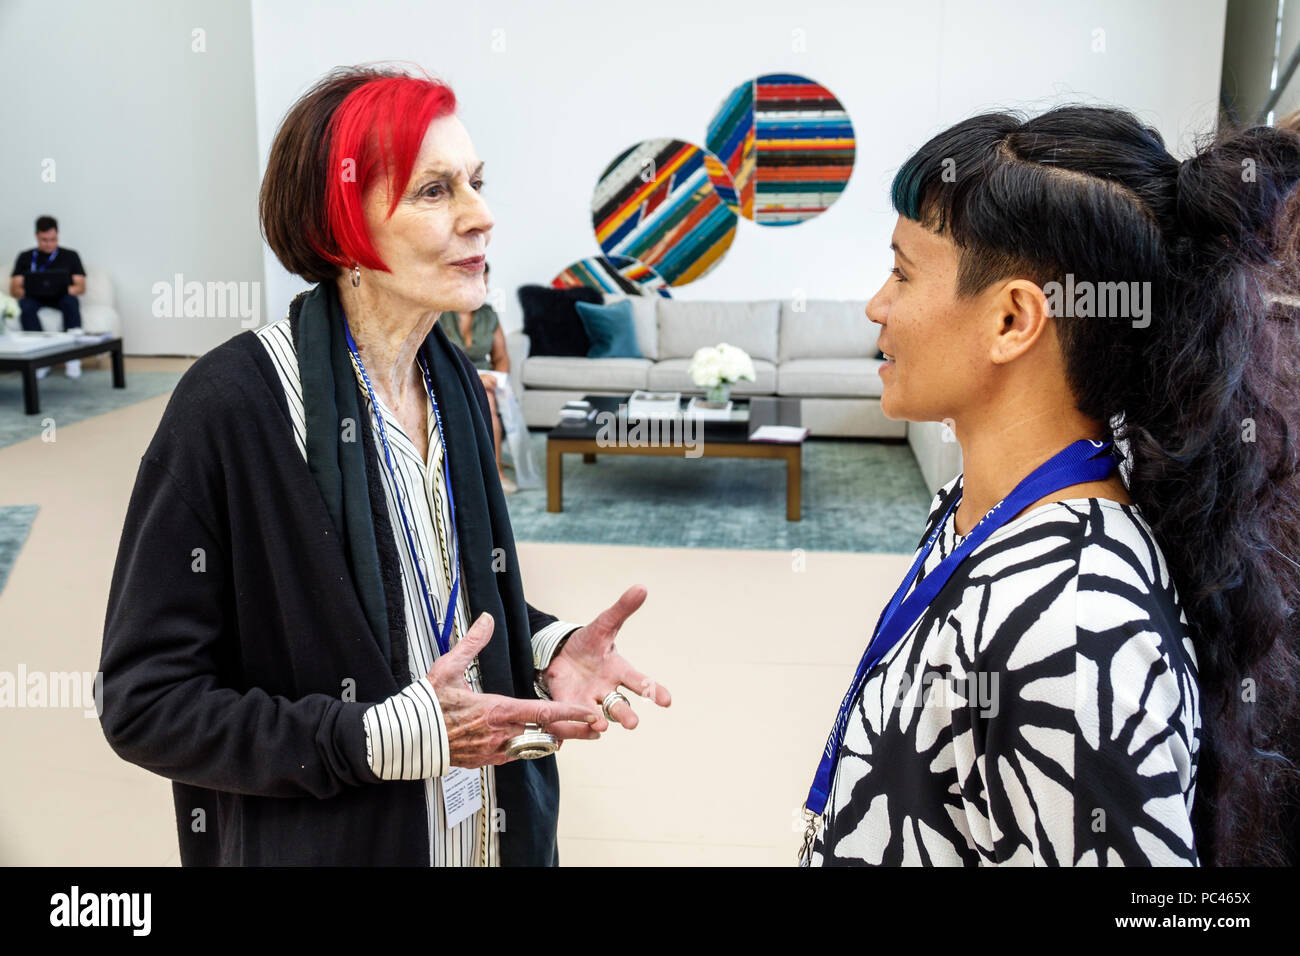 Miami Beach Florida Art Basel Week Untitled gallery show event contemporary woman mature trendy haircut bright red hair coloring talking hands gesturi - Stock Image